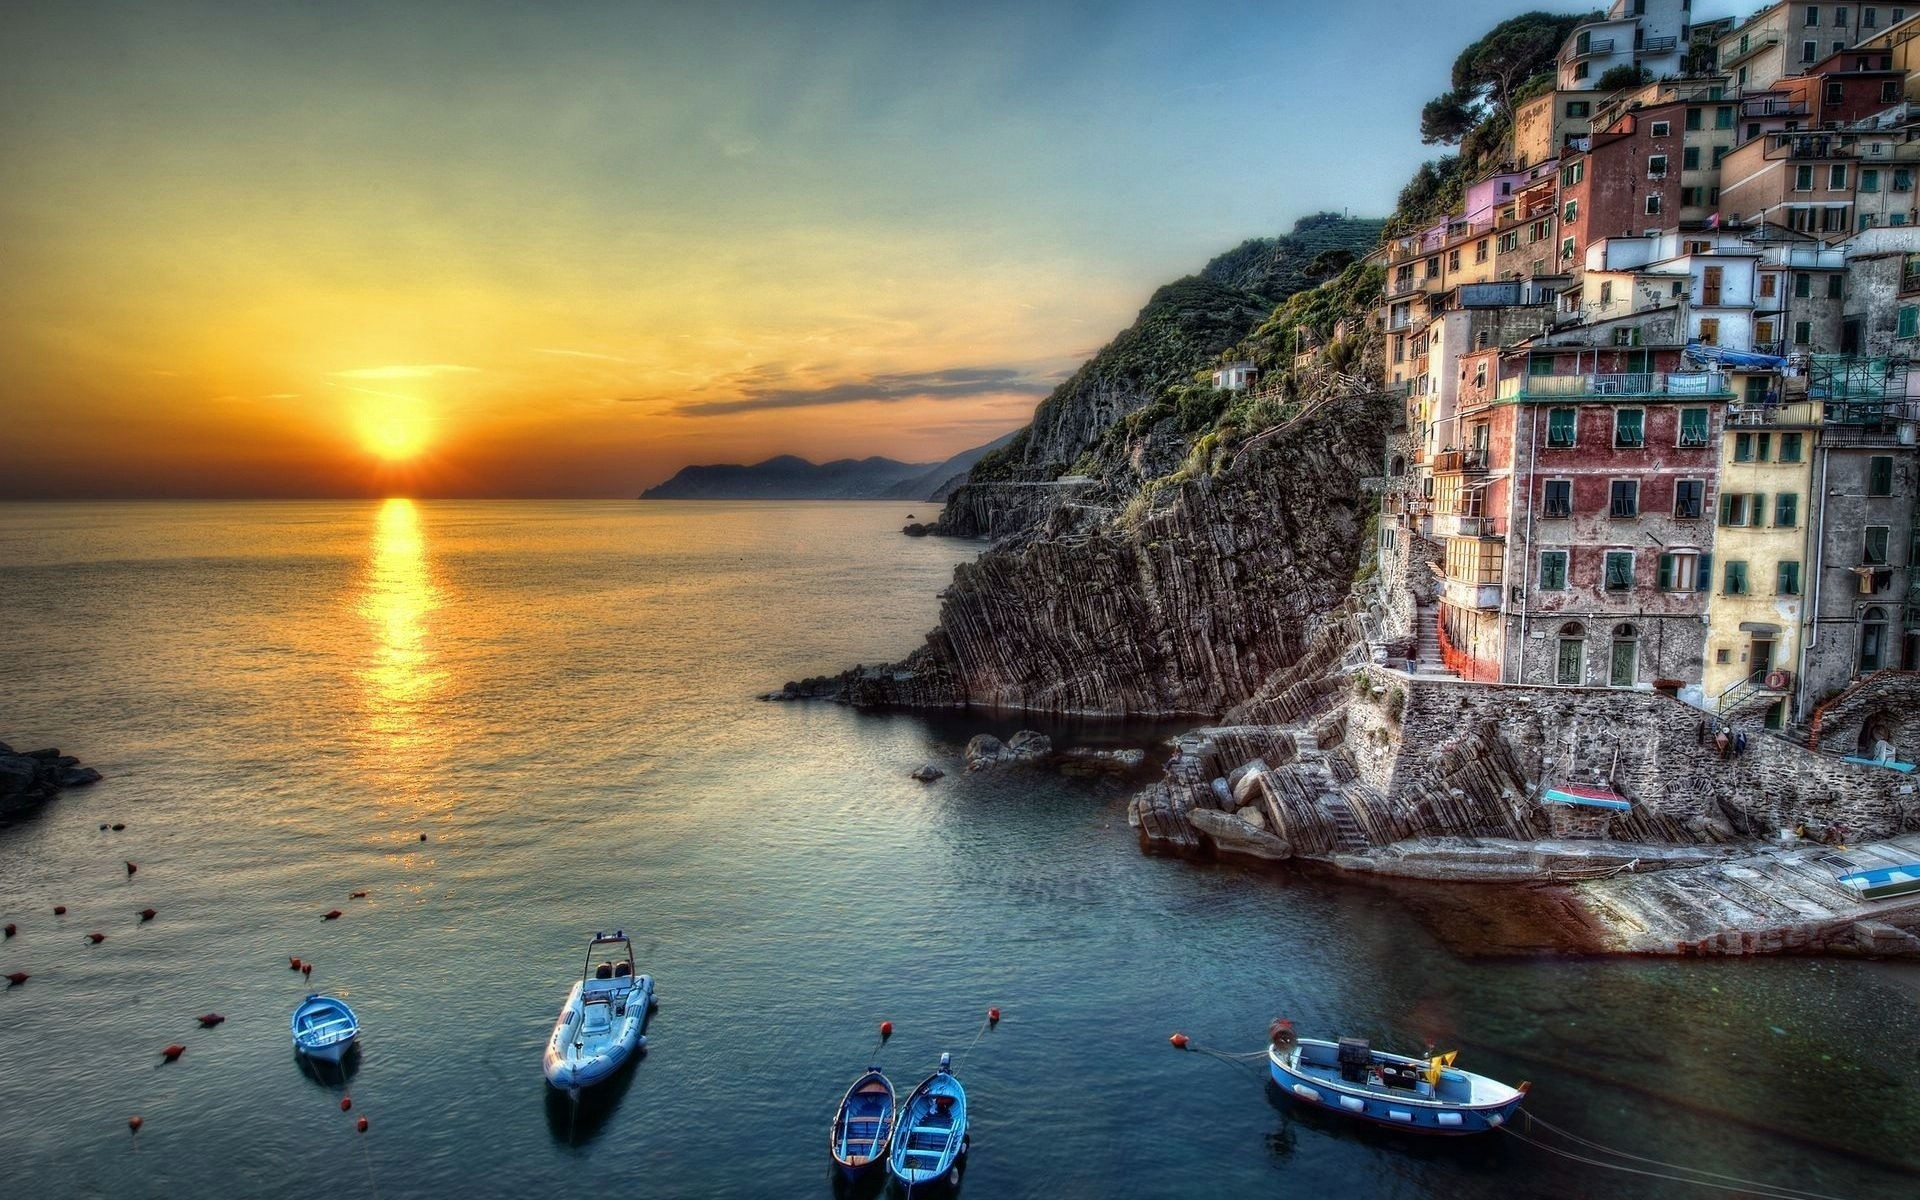 sunset Italy HD Wallpaper